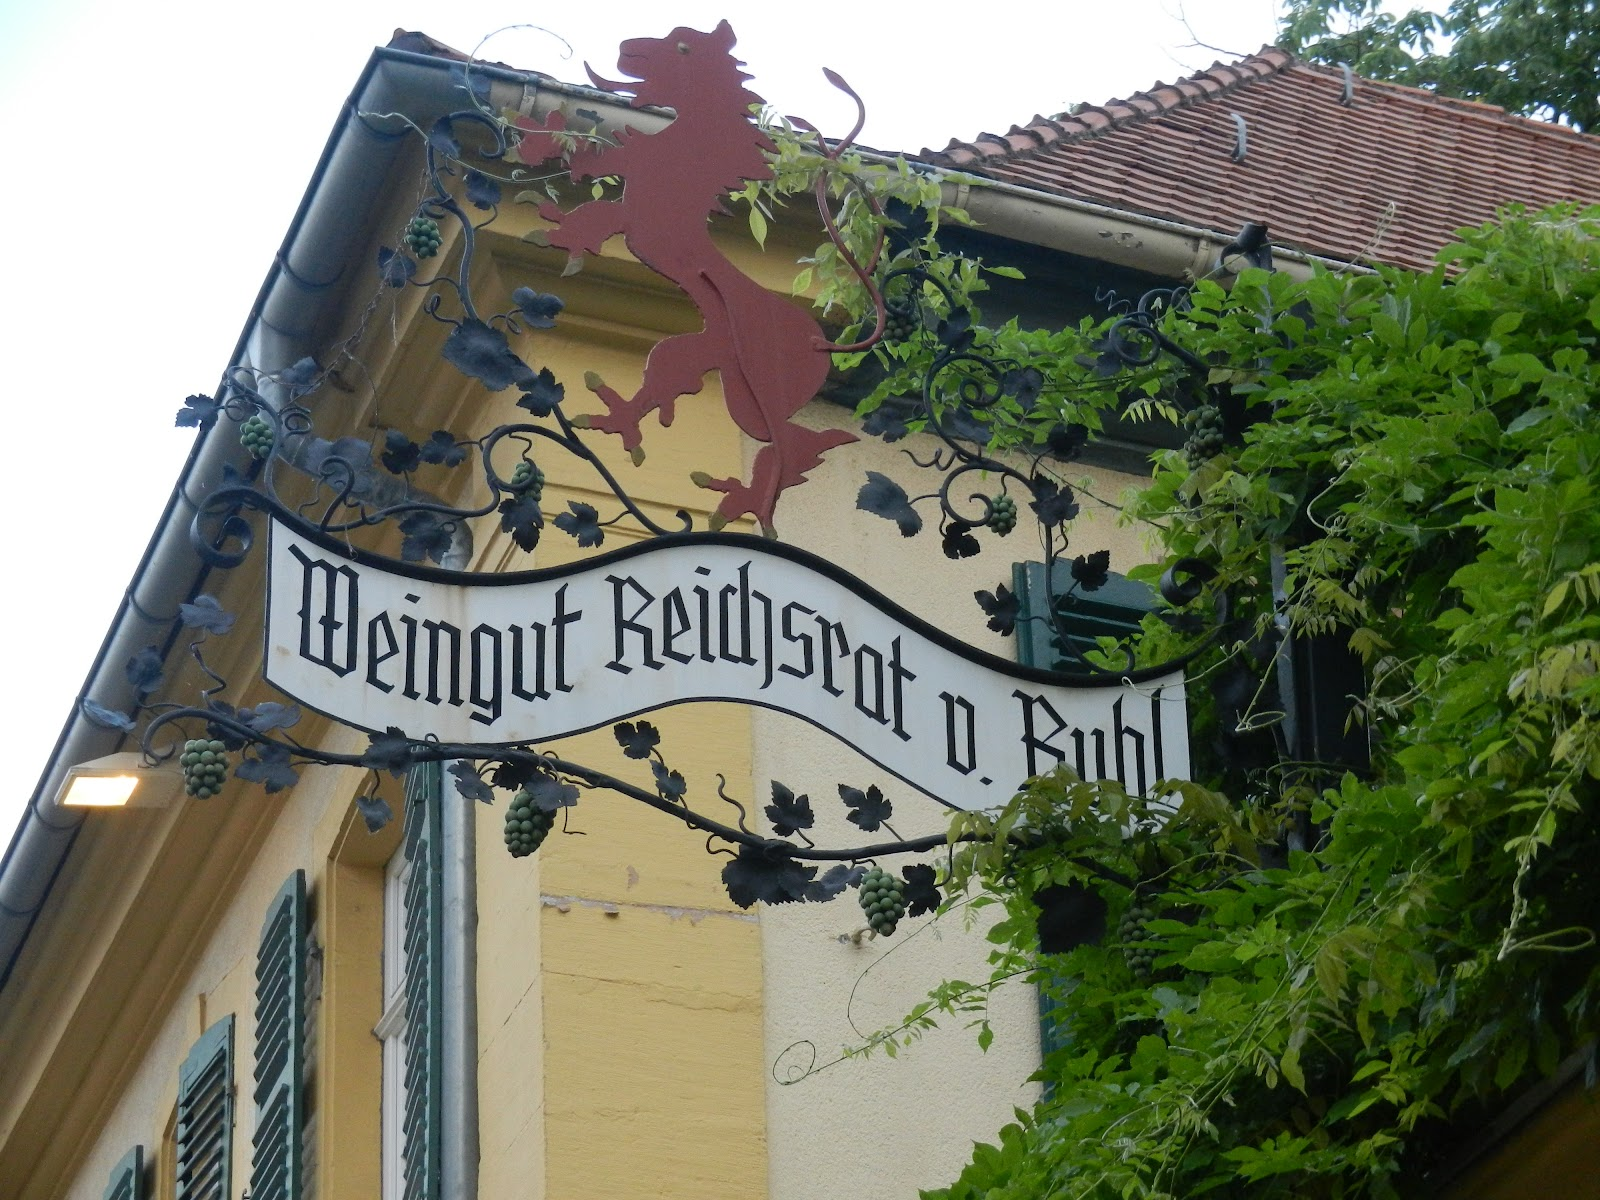 Deidesheim Germany  city pictures gallery : ... Dinner at Weingut Reichsrat von Buhl in Deidesheim, Pfalz, Germany